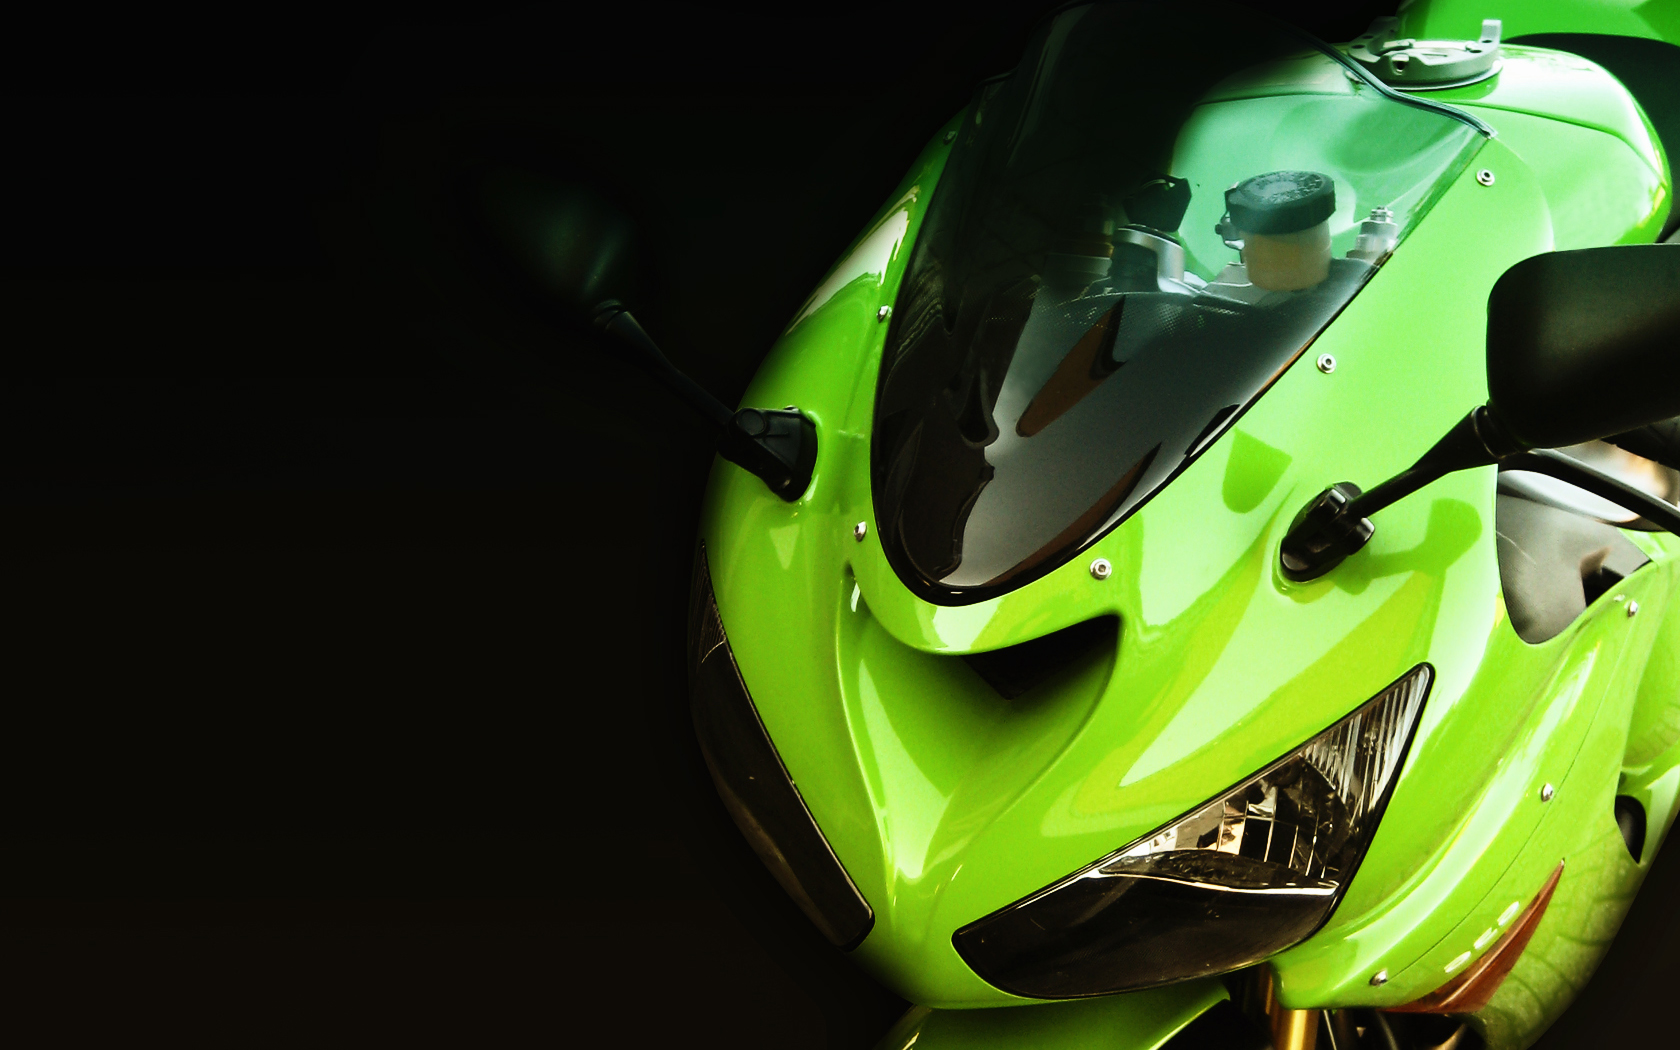 Kawasaki zx6r Wallpaper by vrlosilepa 1680x1050